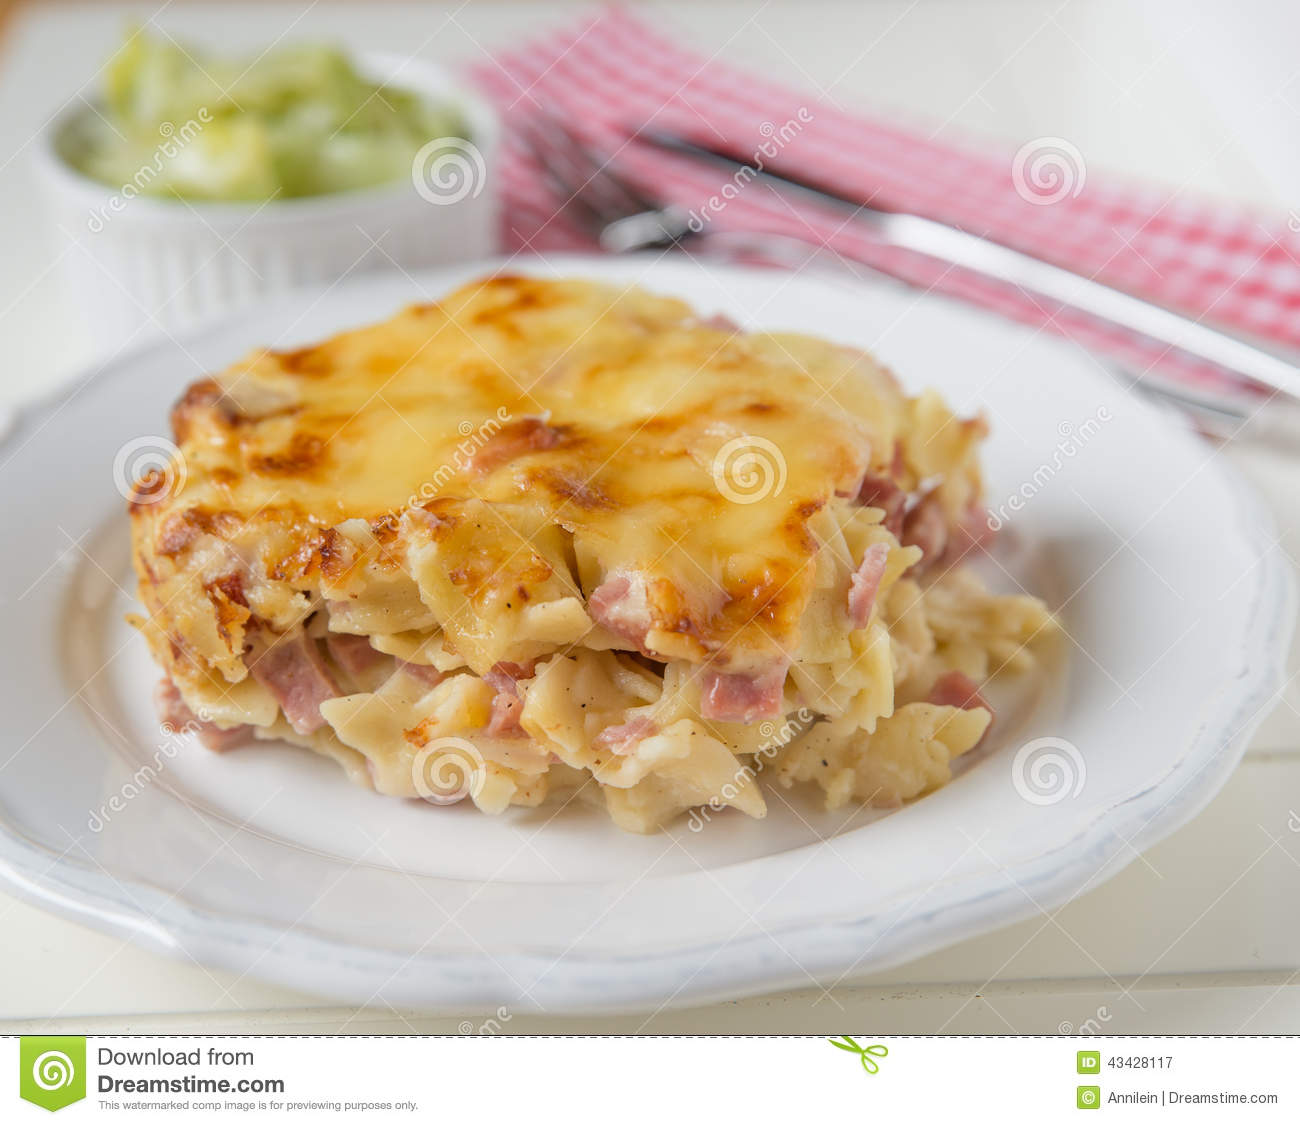 Creamy baked pasta with bacon and cheese and green salad.